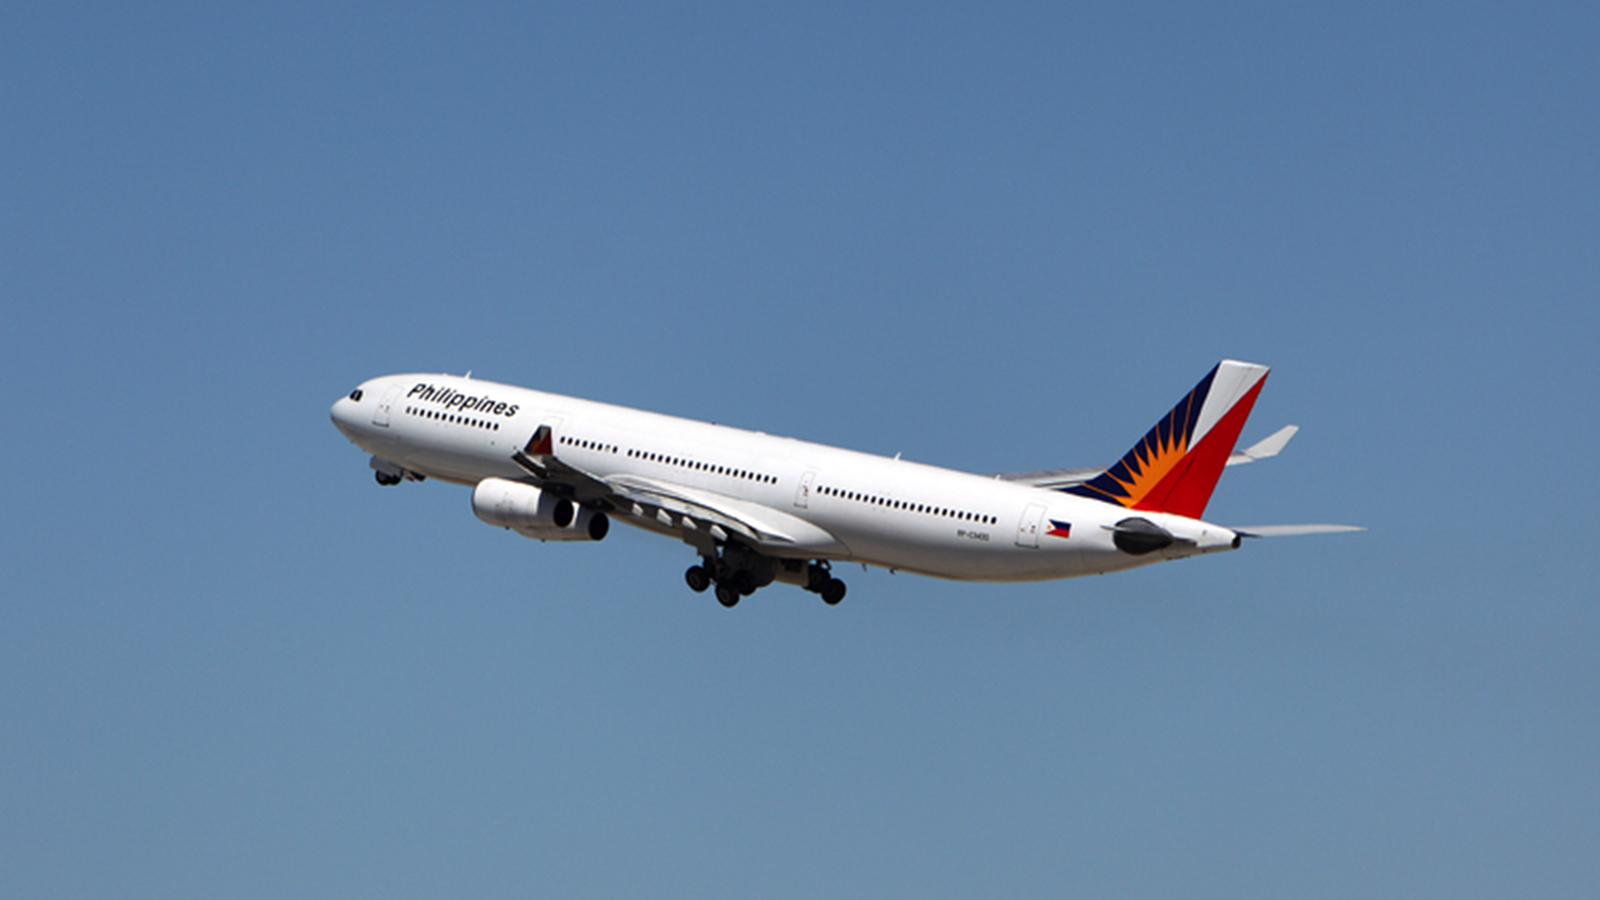 PAL Hopeful To Become 4 Star Airline This 2018